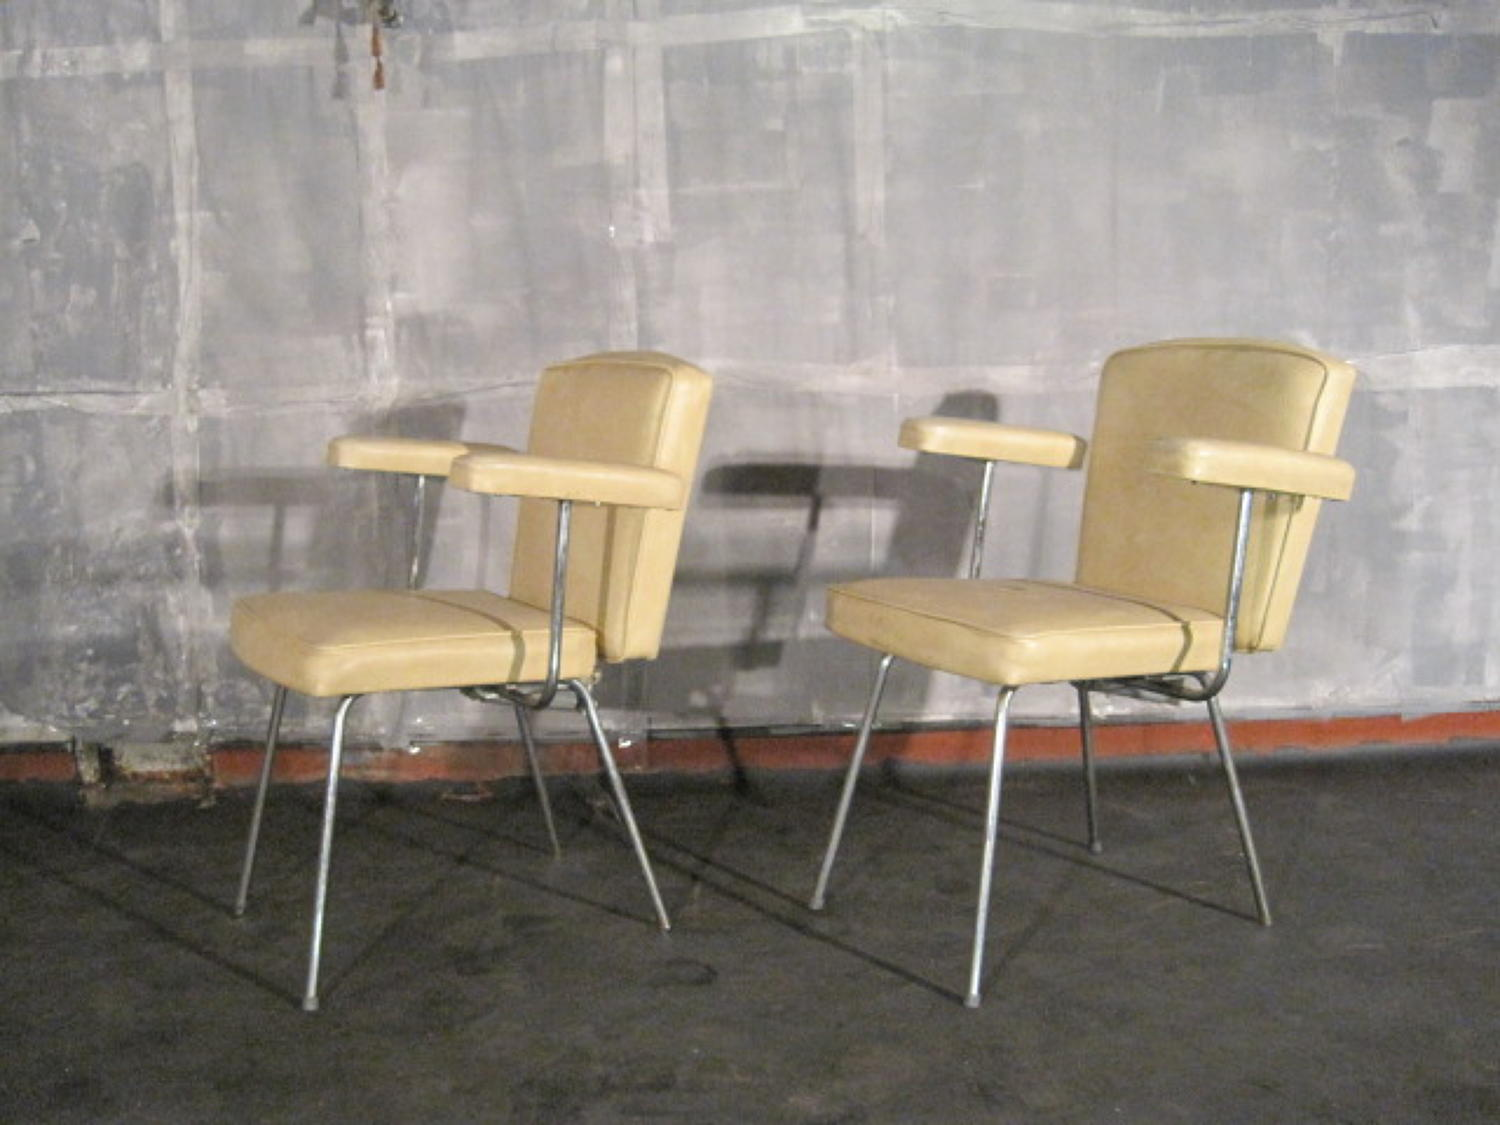 Vintage salon chairs